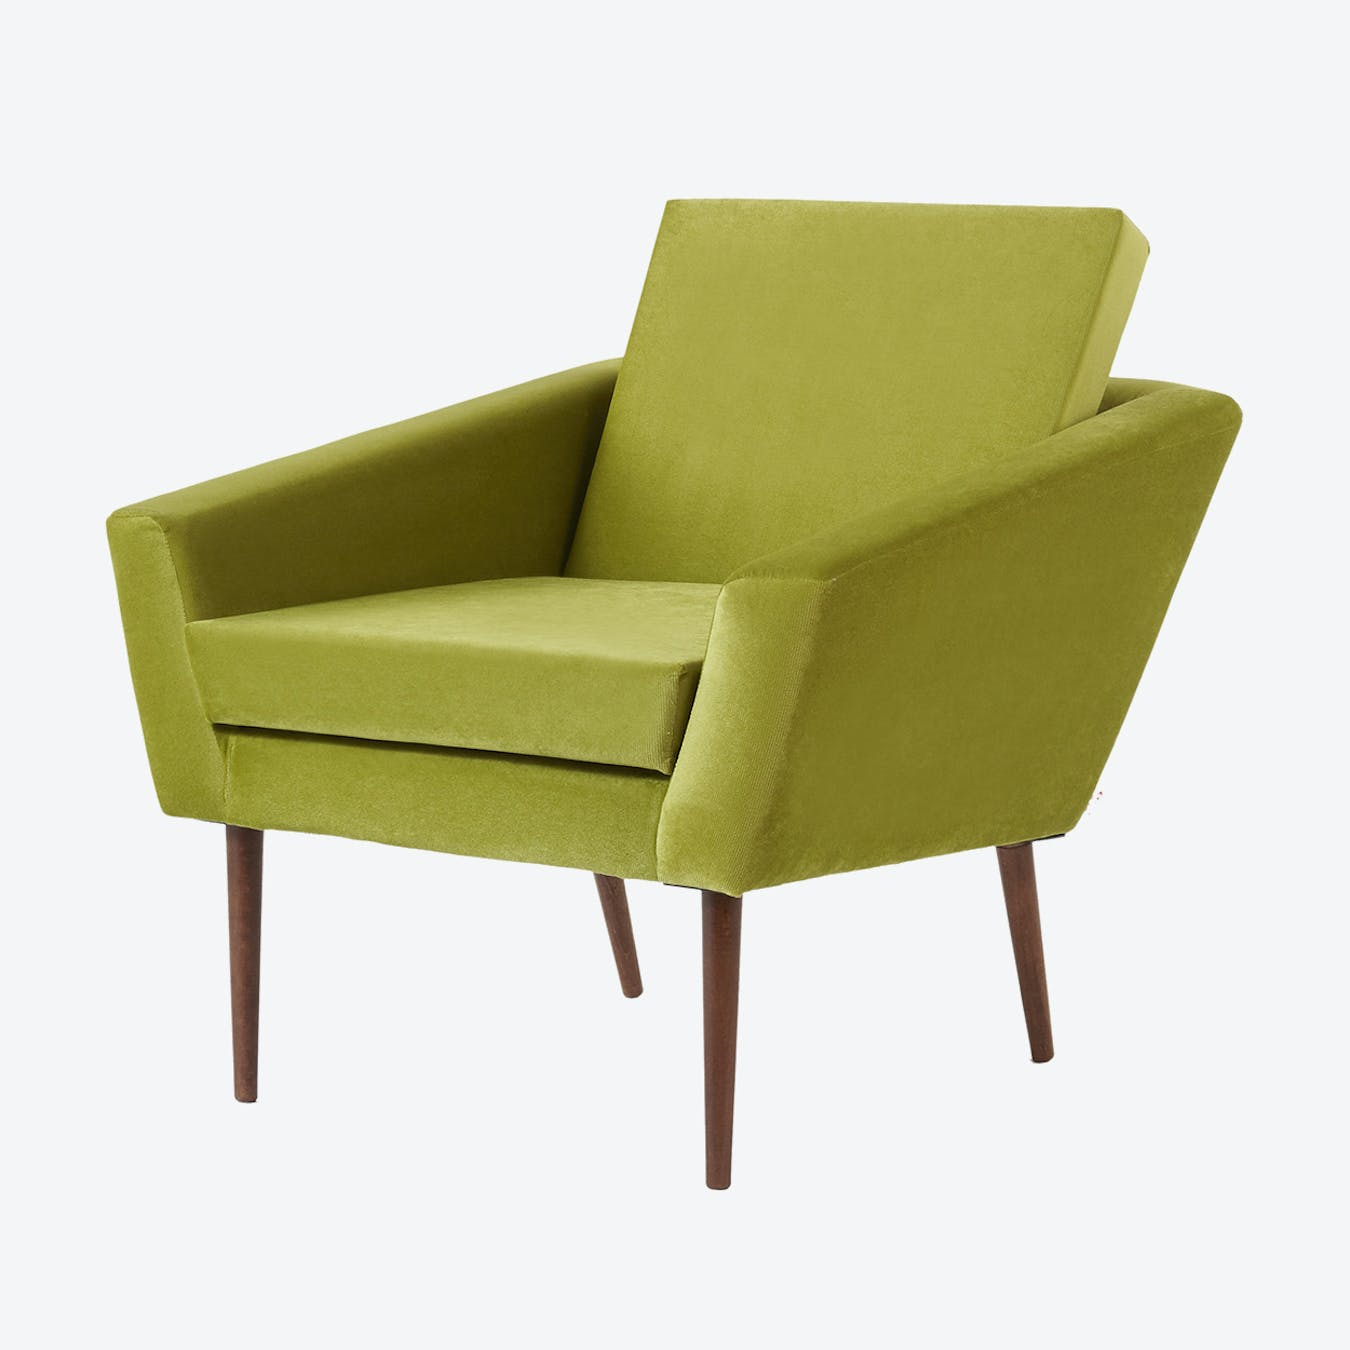 Supernova Chair - Velvet Line in Apple Green